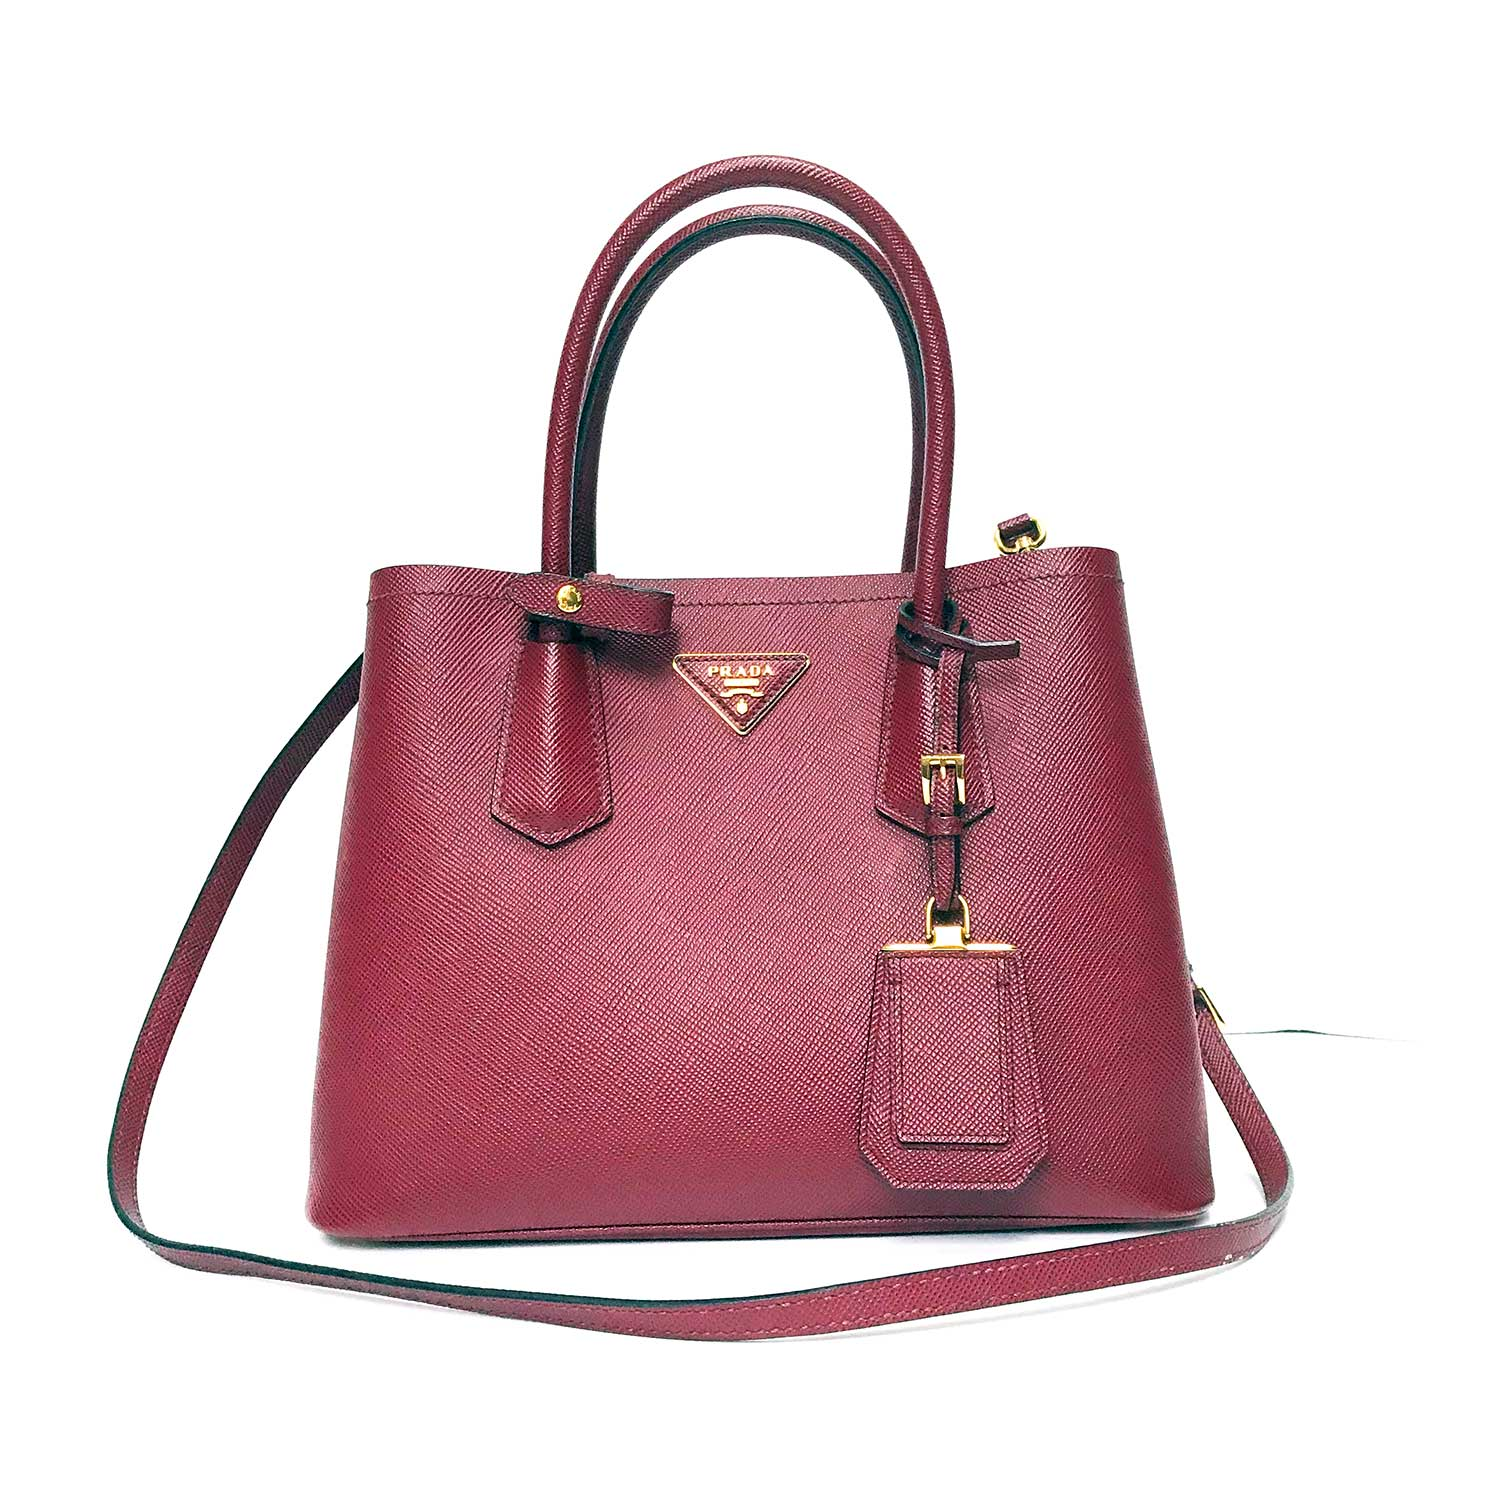 66050f64a1ac21 Prada Dk Red Saffiano Leather Execute Tote Bag | | My Personal Shoppers